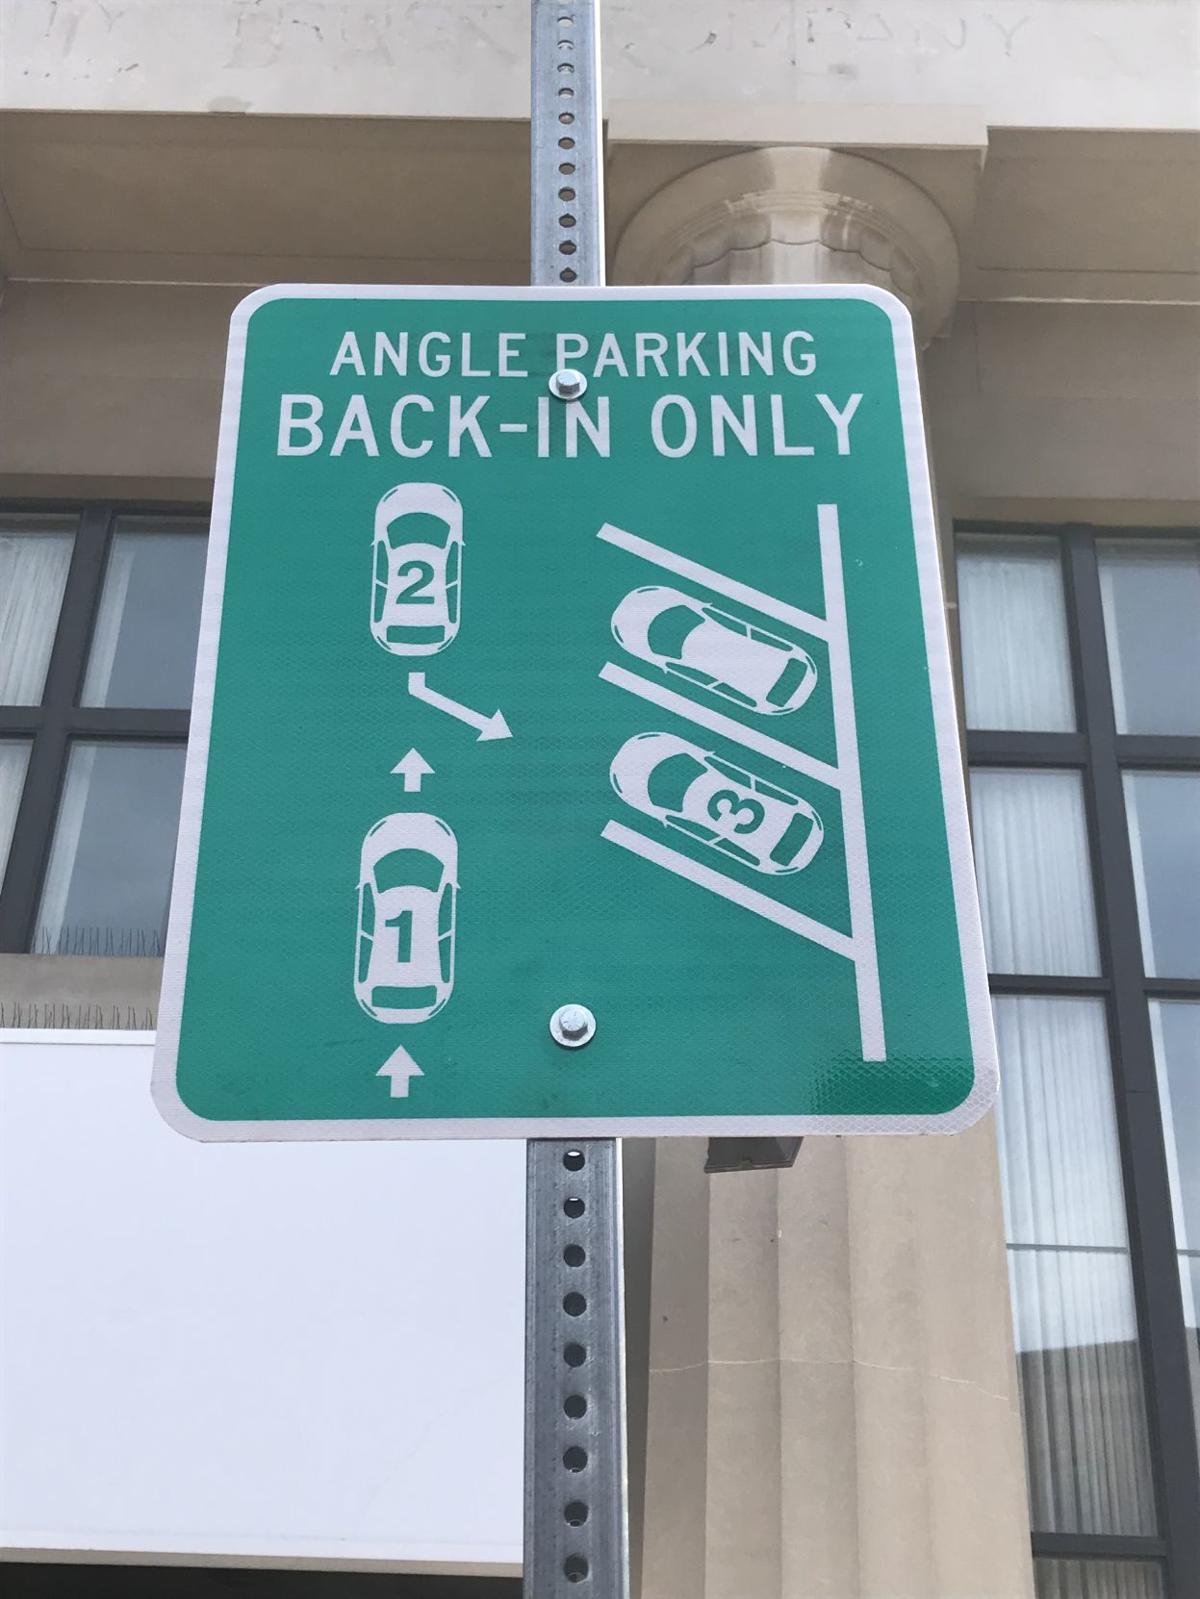 Back-in parking sign